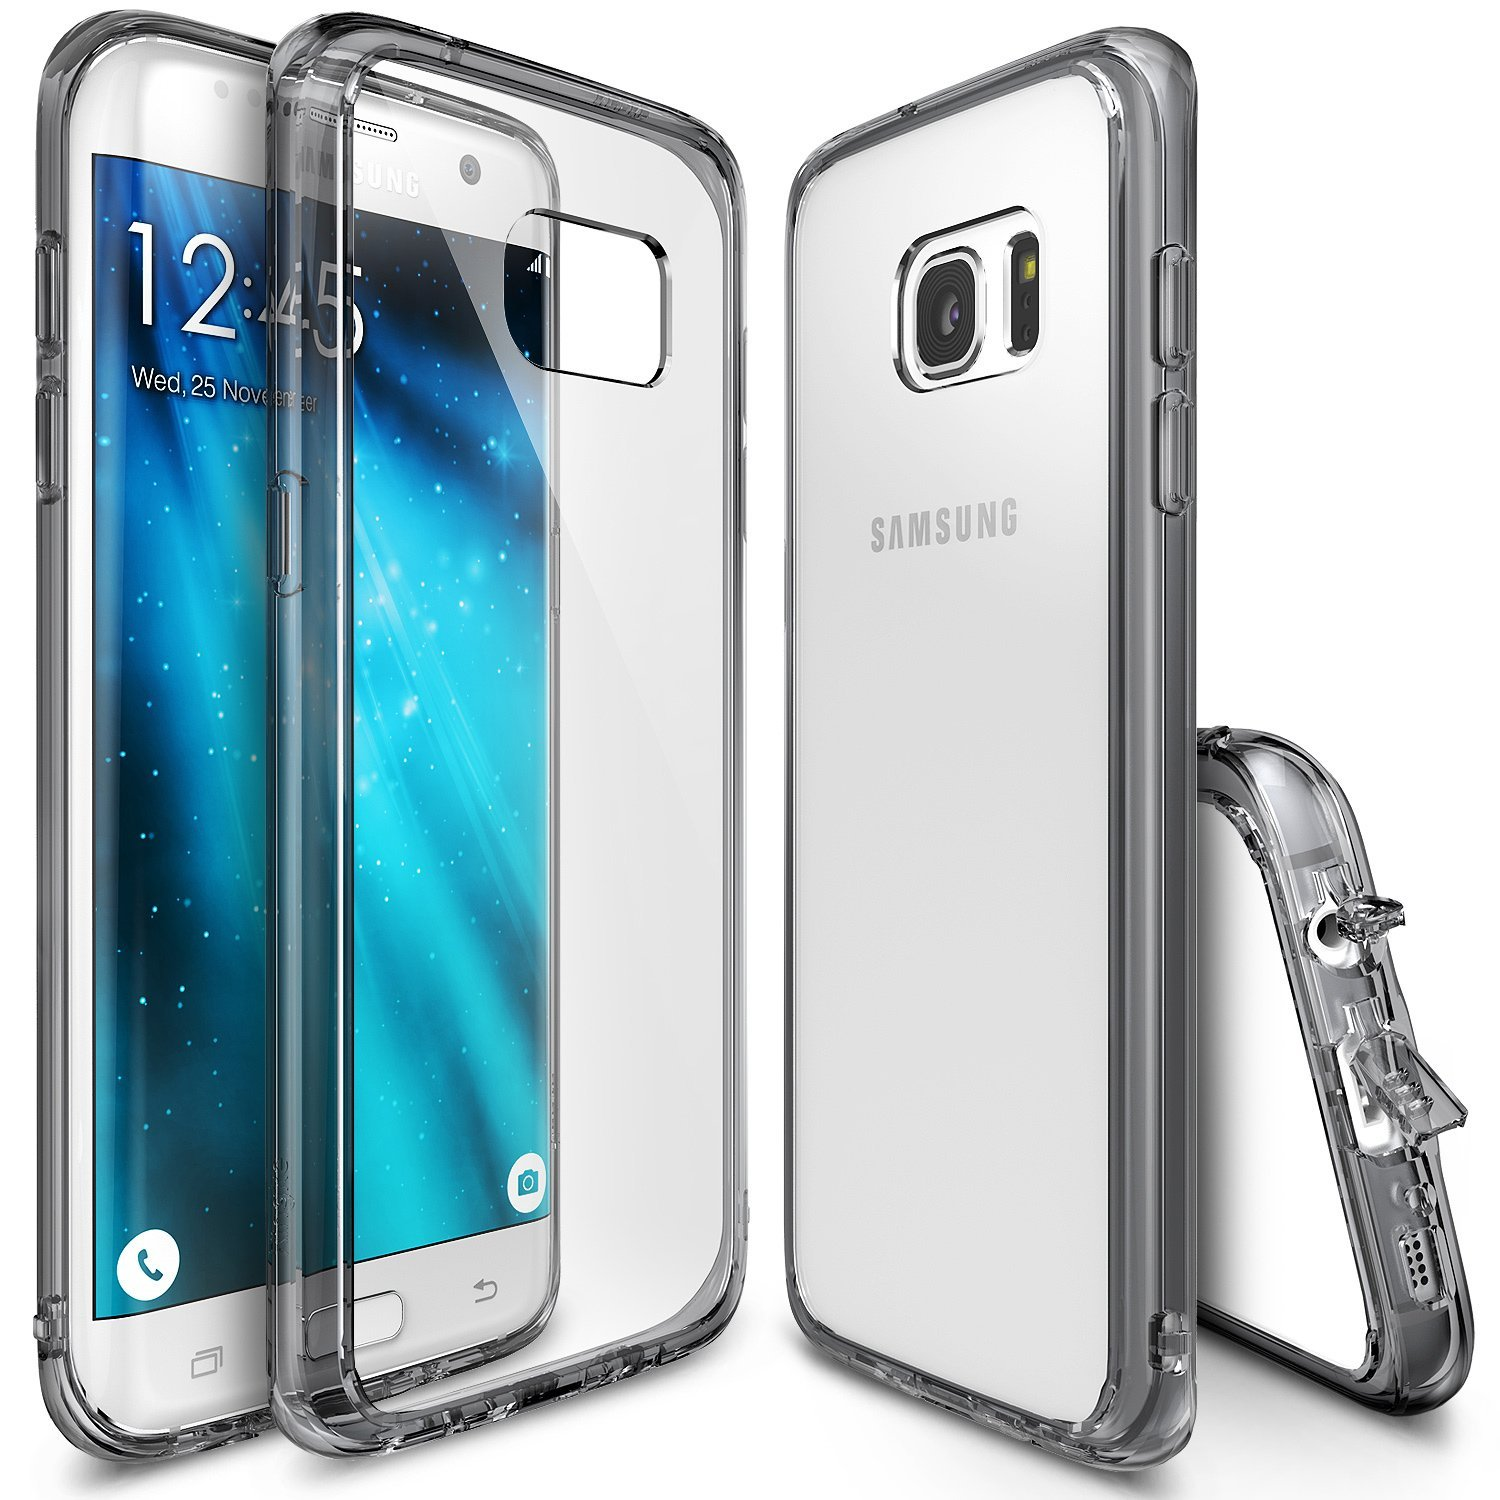 Samsung Galaxy S7 Edge Case, Ringke [Smoke Black] FUSION Series Absorb Shock TPU Bumper Clear Case